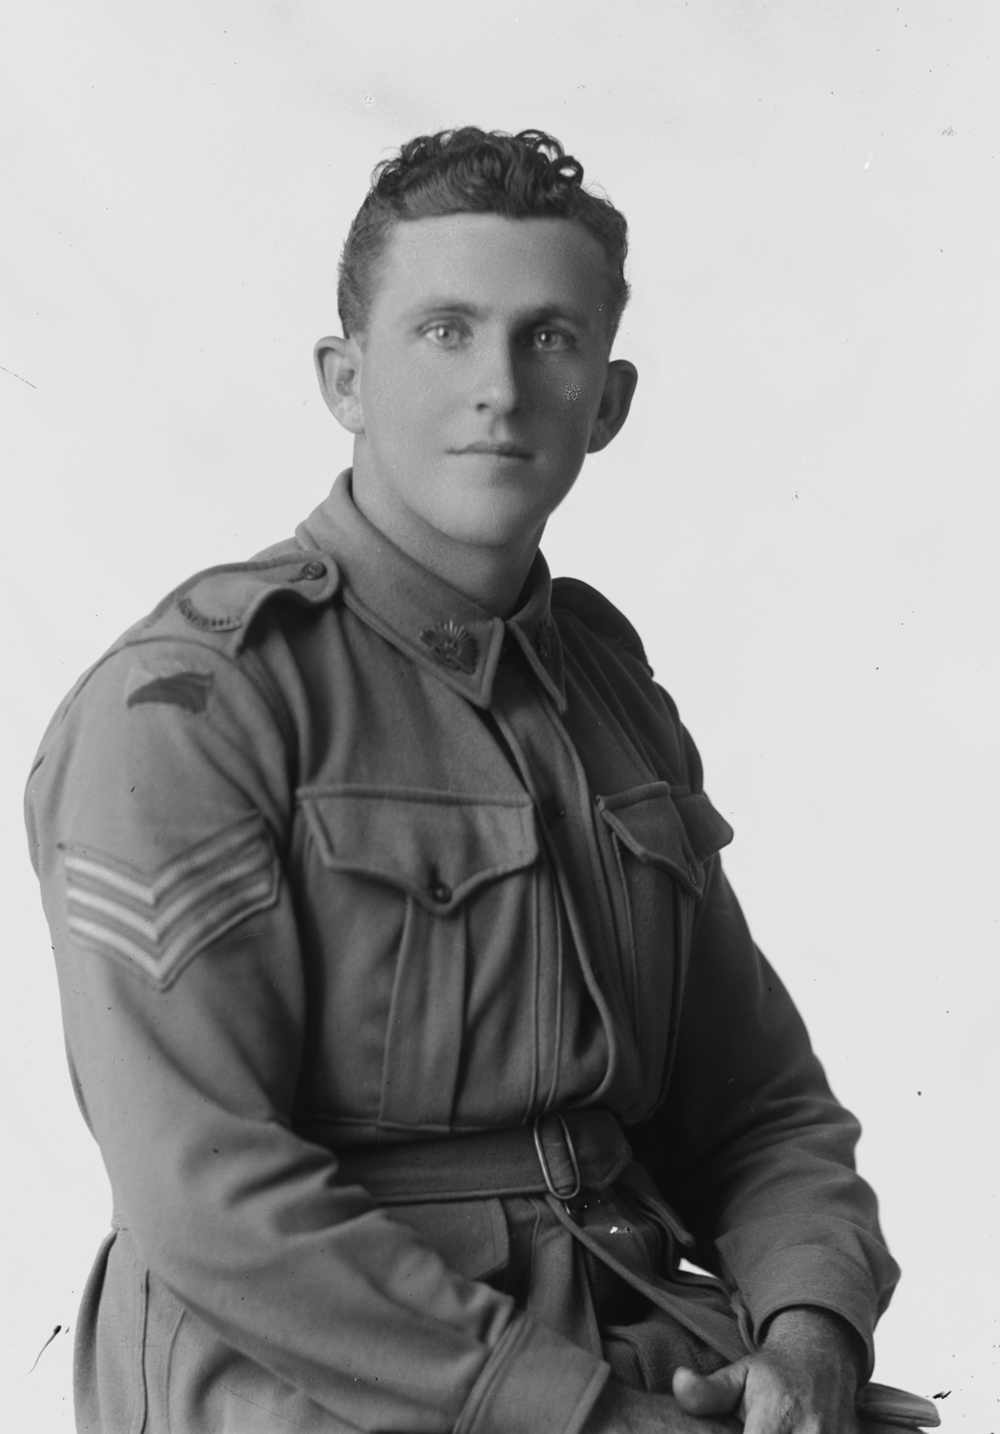 Photographed at the Dease Studio, 117 Barrack Street Perth WA Image courtesy of the State Library of Western Australia: 108521PD